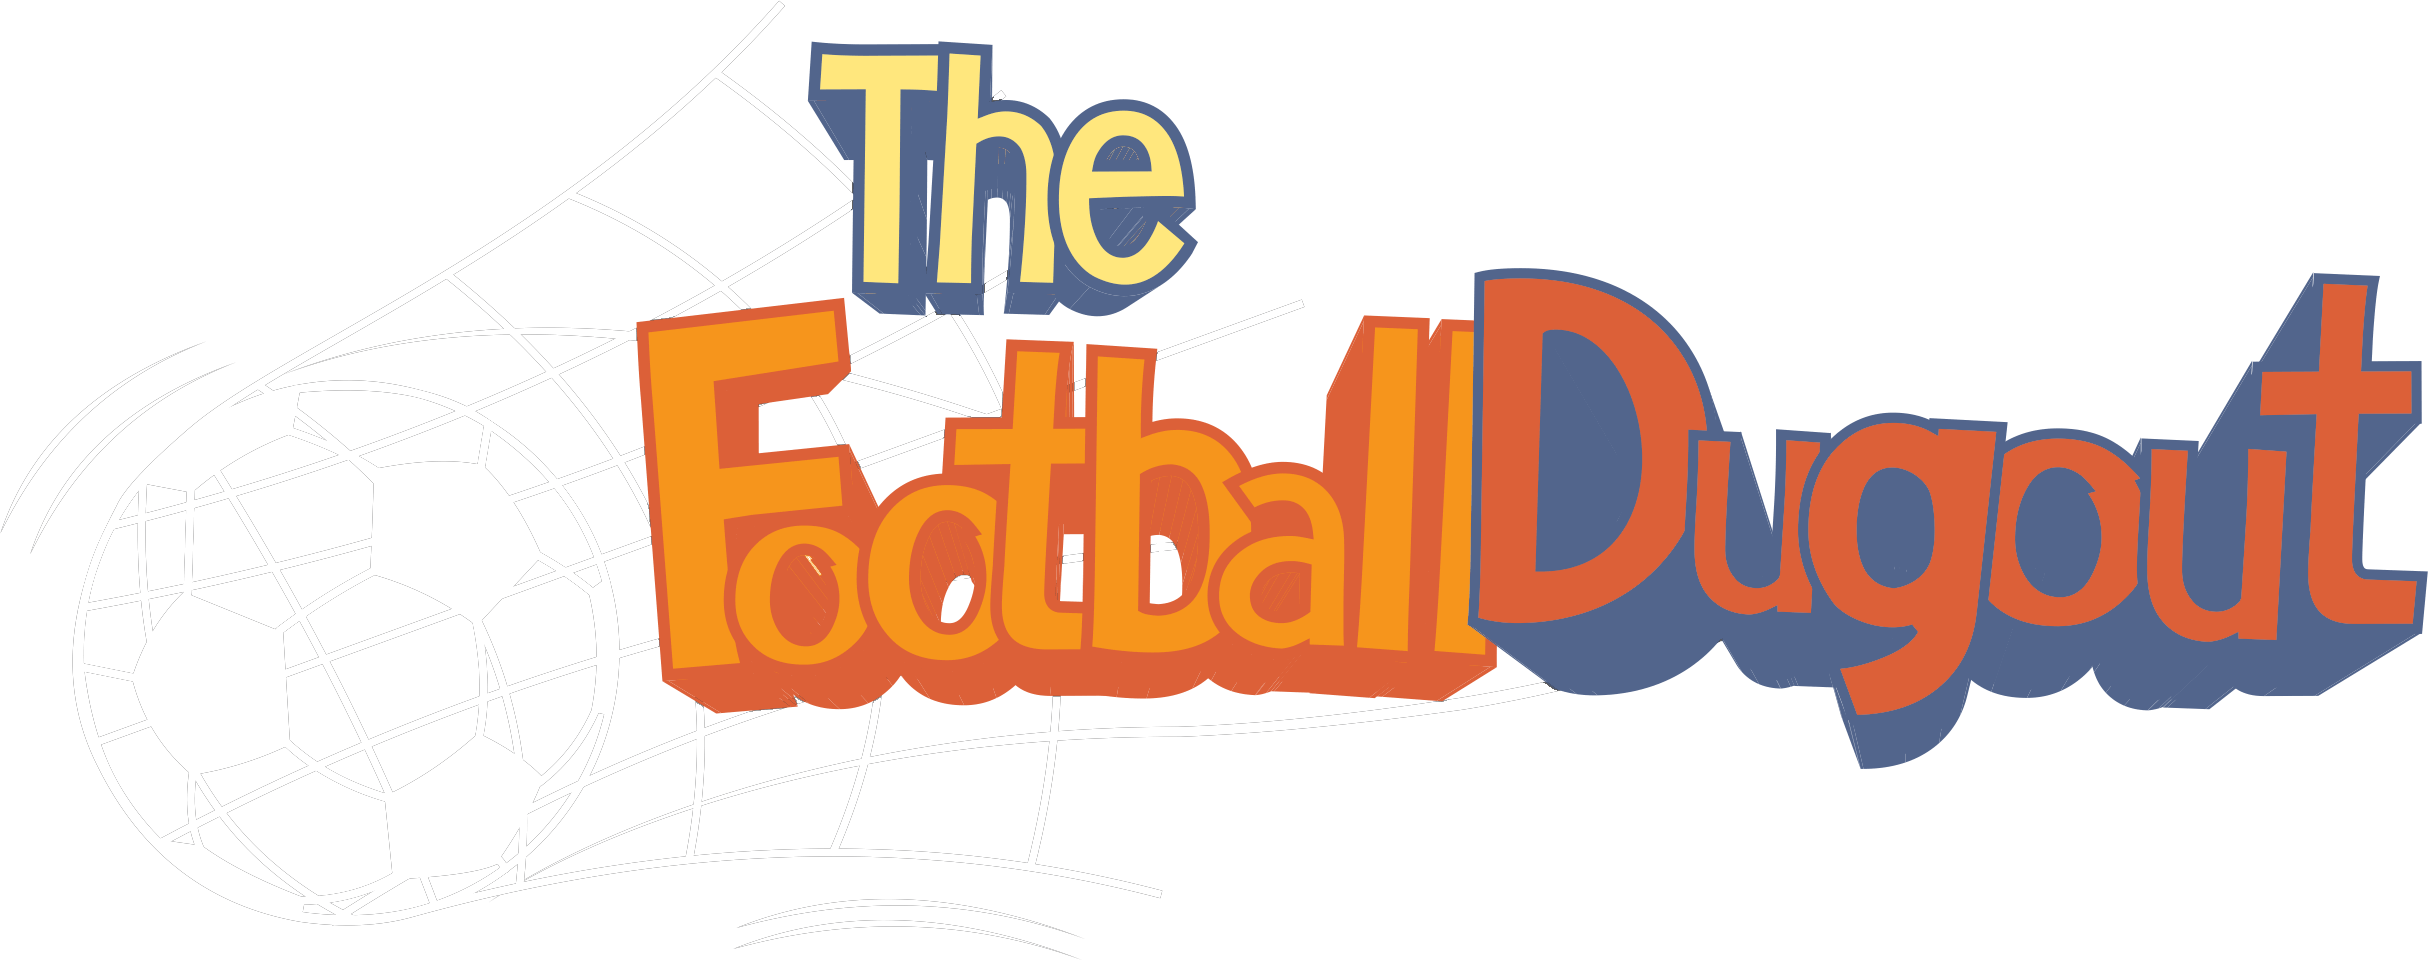 Events List | THEFOOTBALLDUGOUT